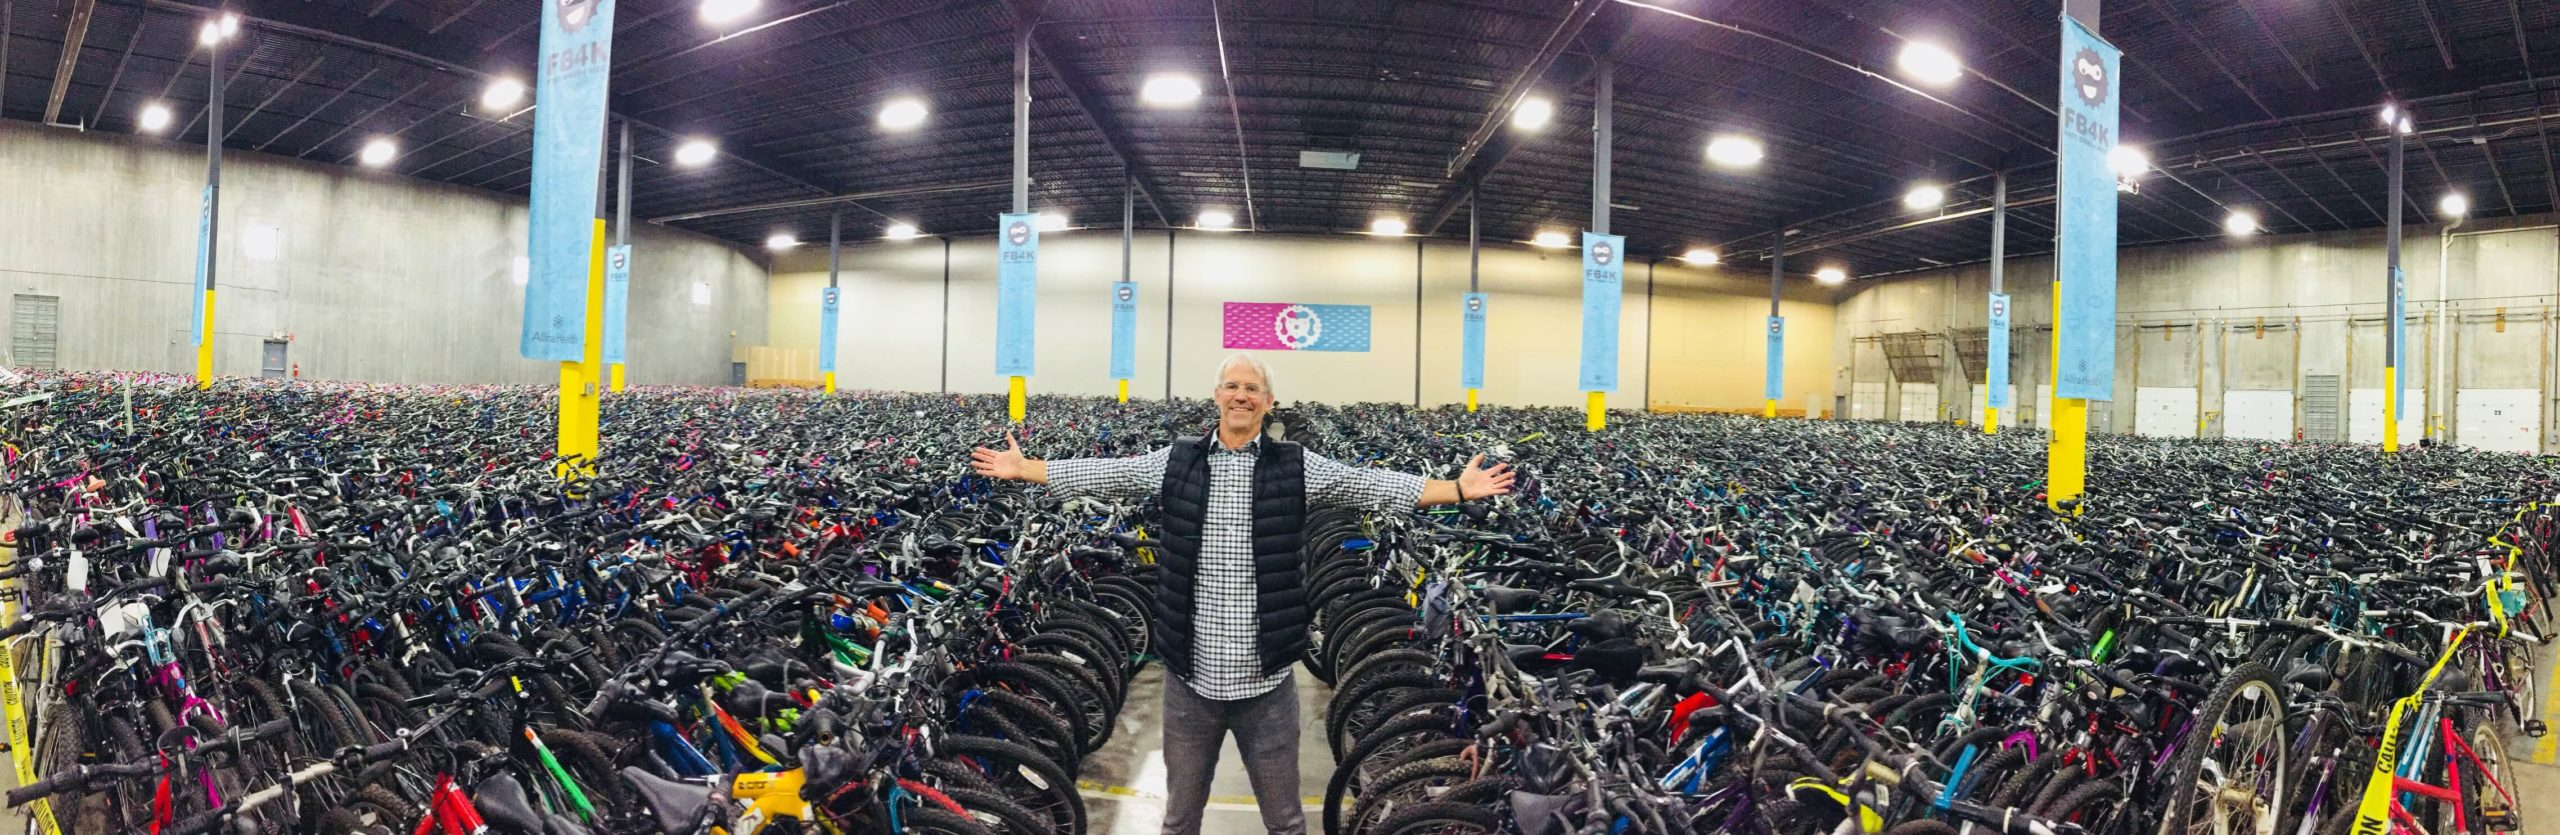 Terry with 10k Bikes